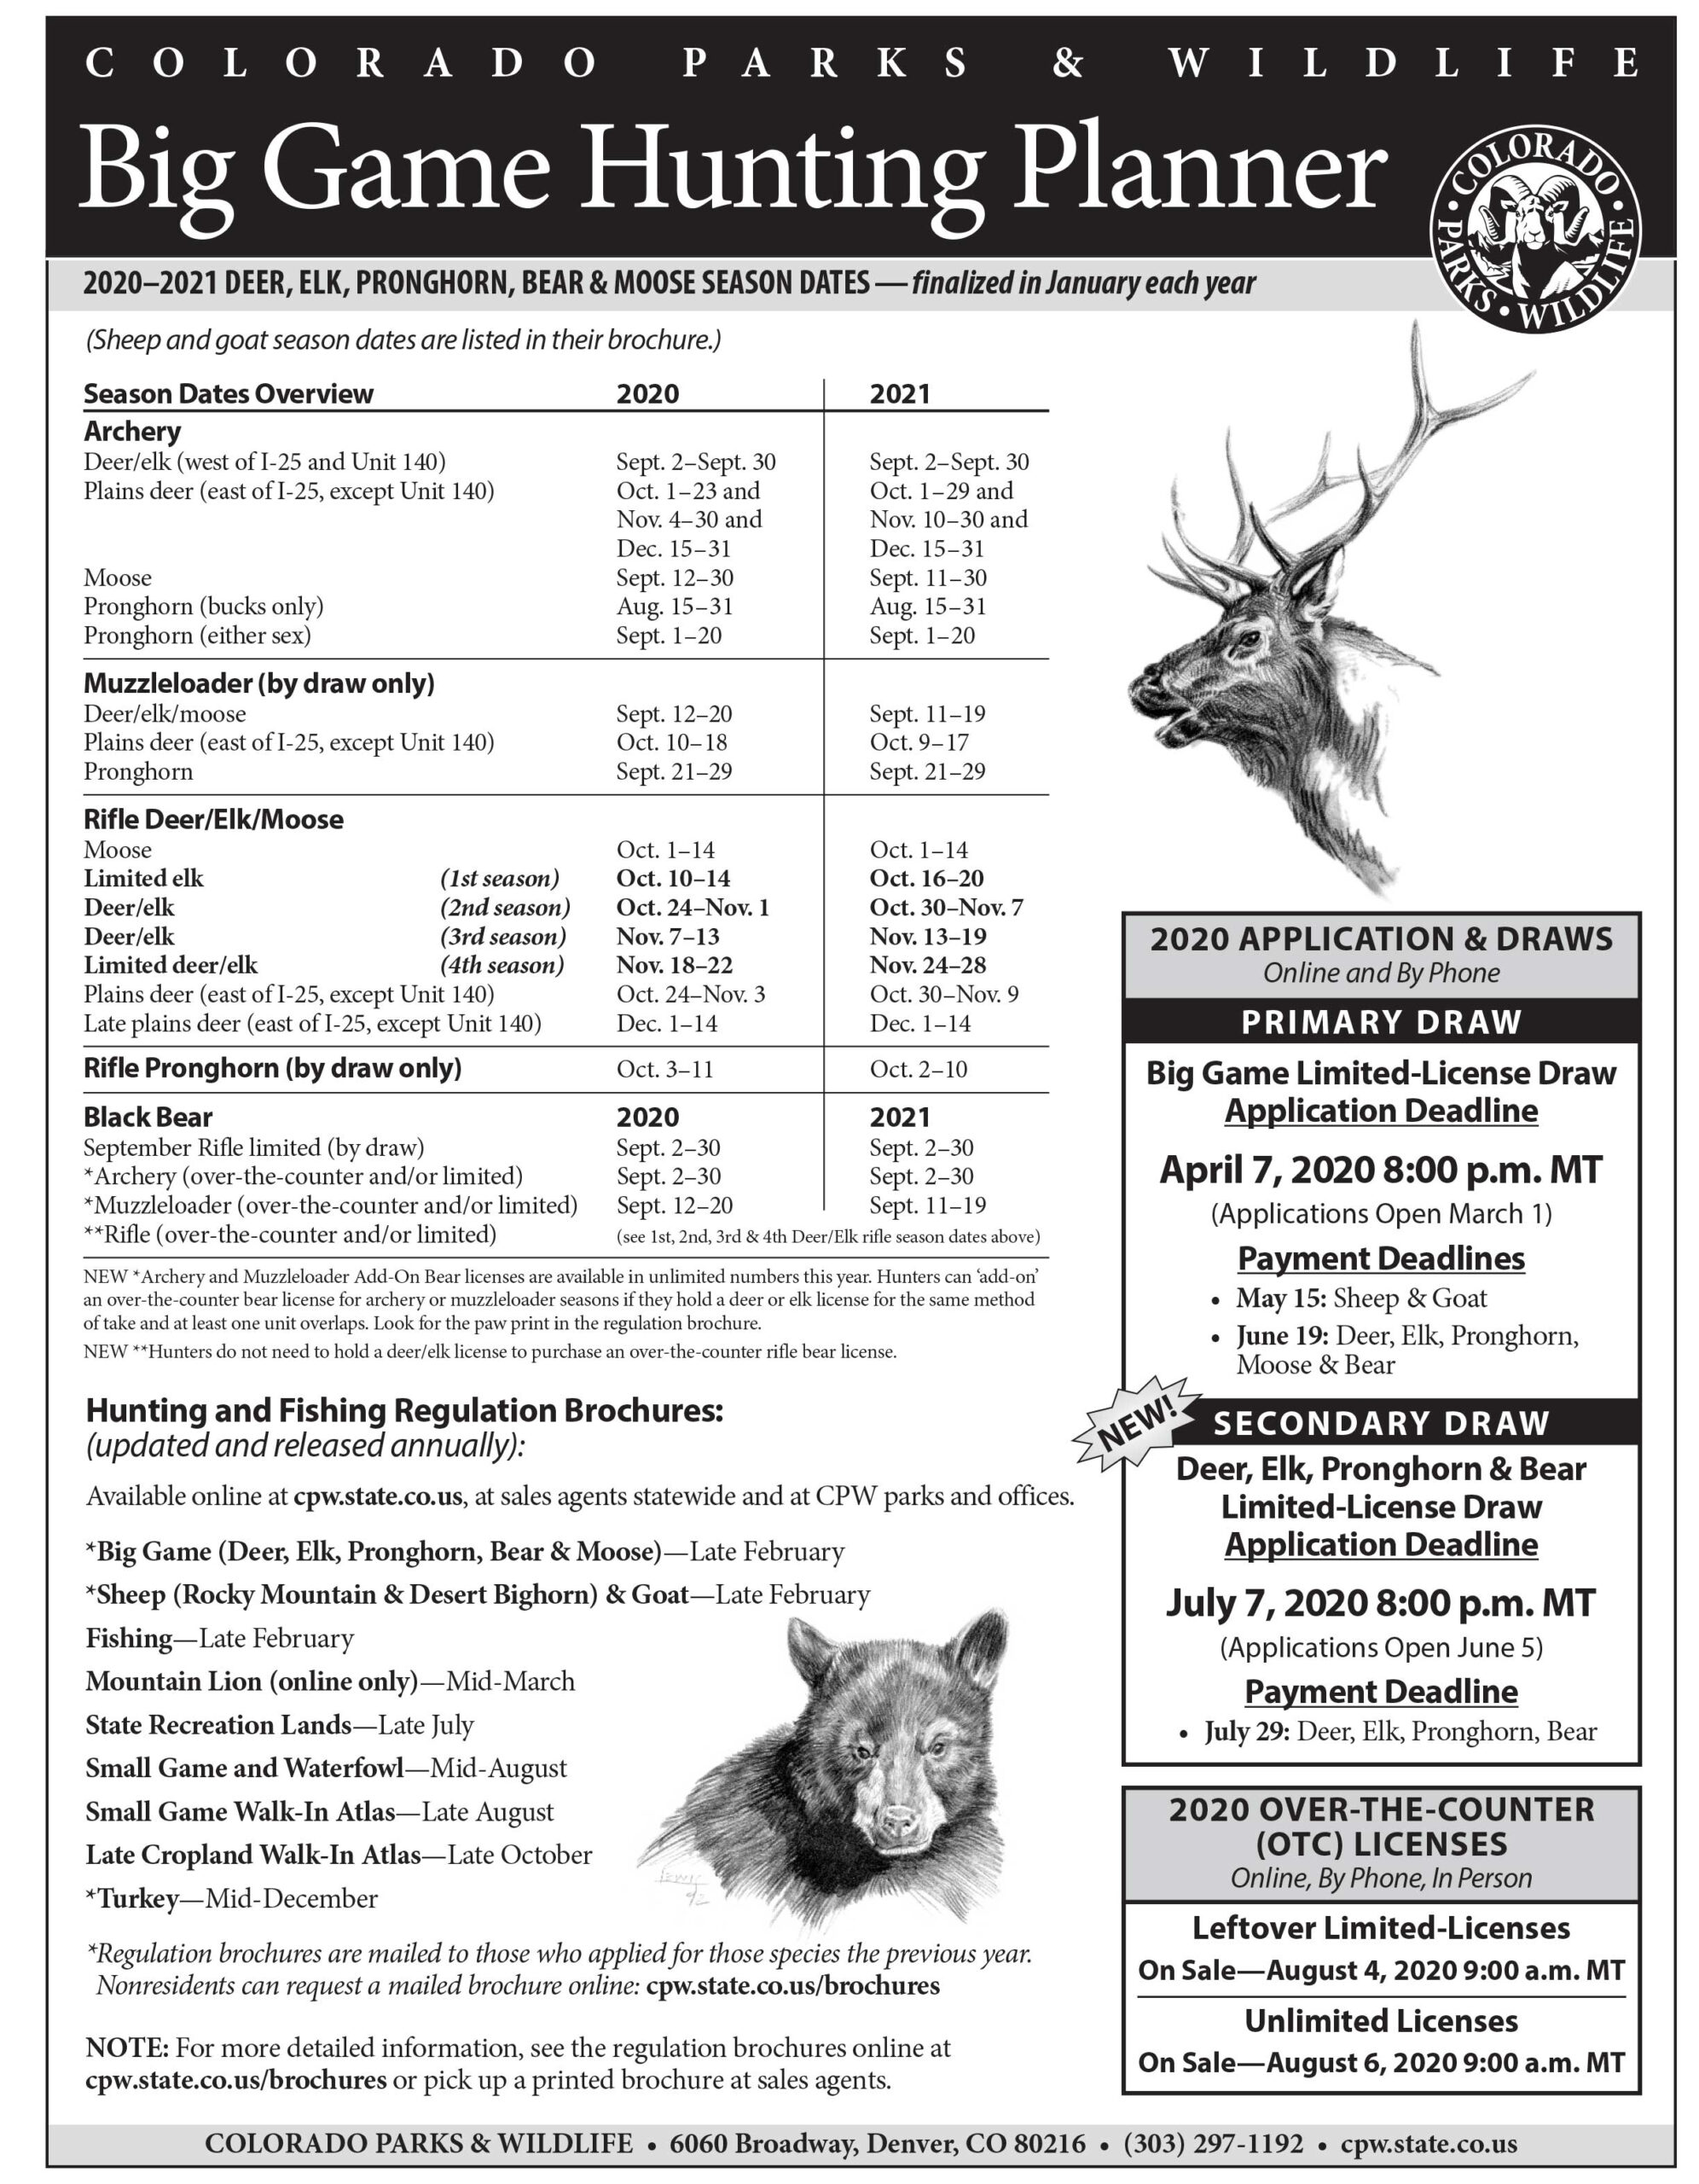 Colorado Parks And Wildlife Big Game Hunting Planner